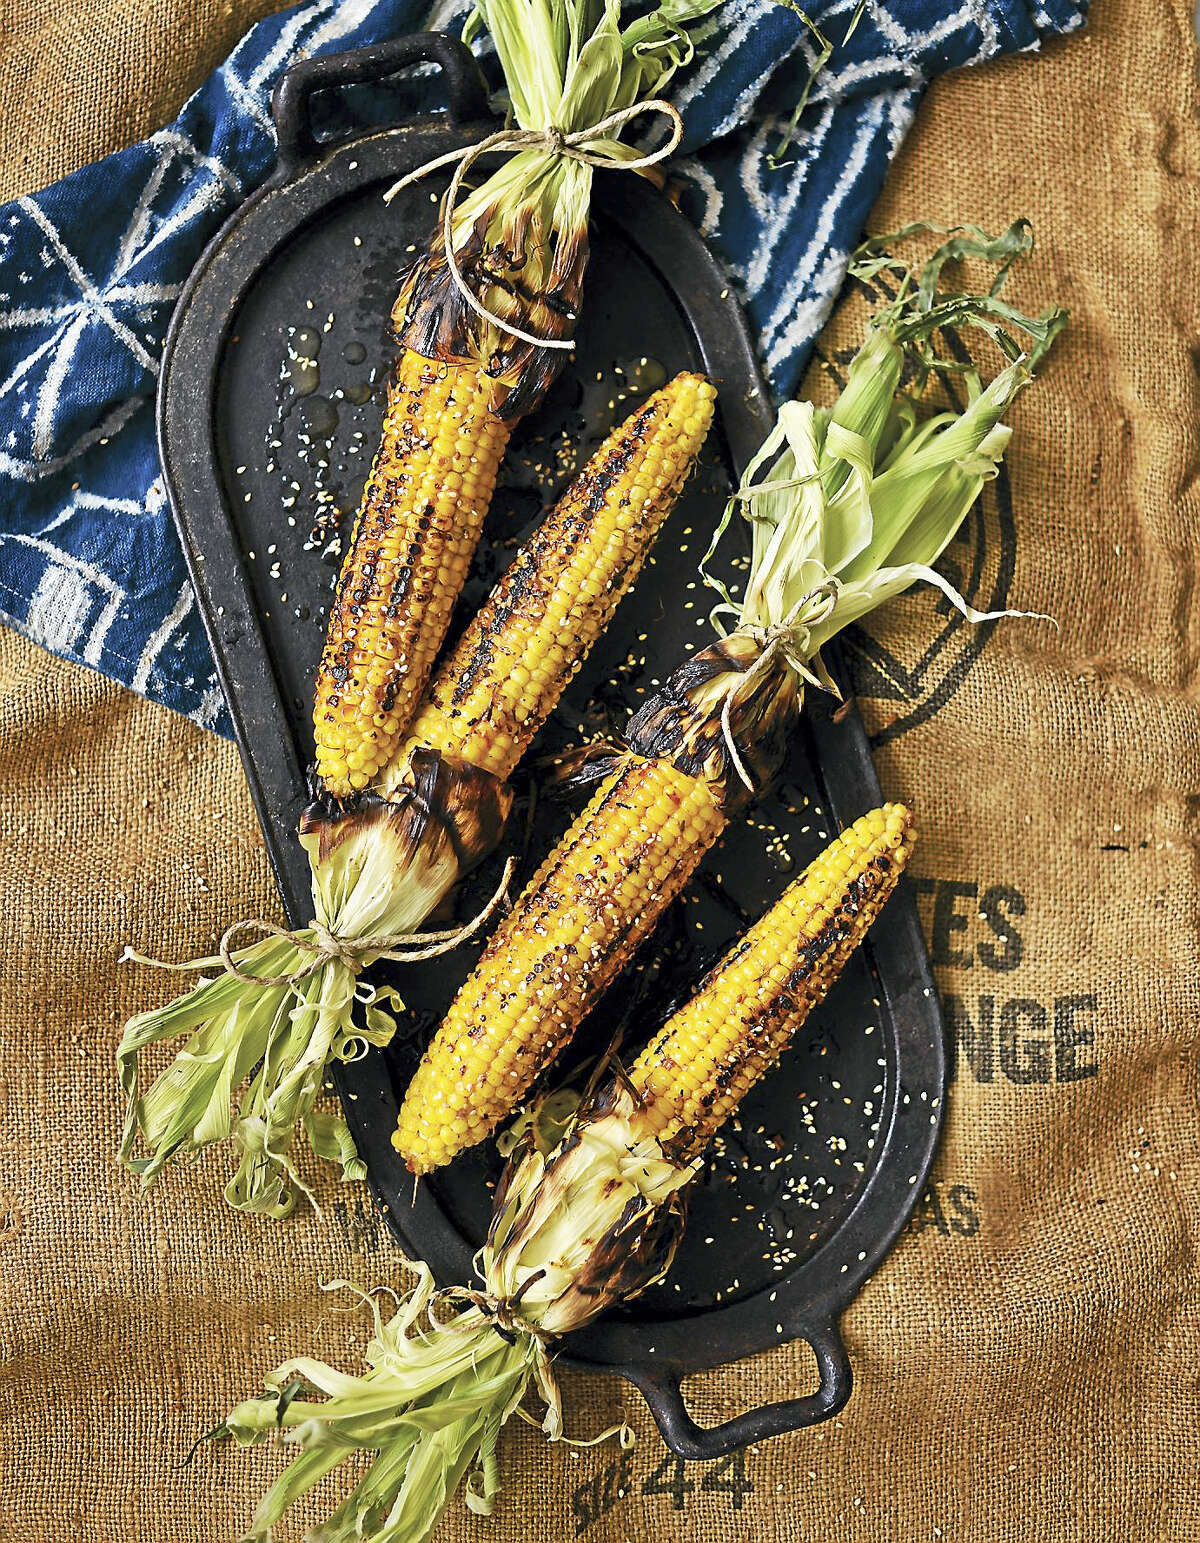 Grilled corn with sesame soy butter baste.